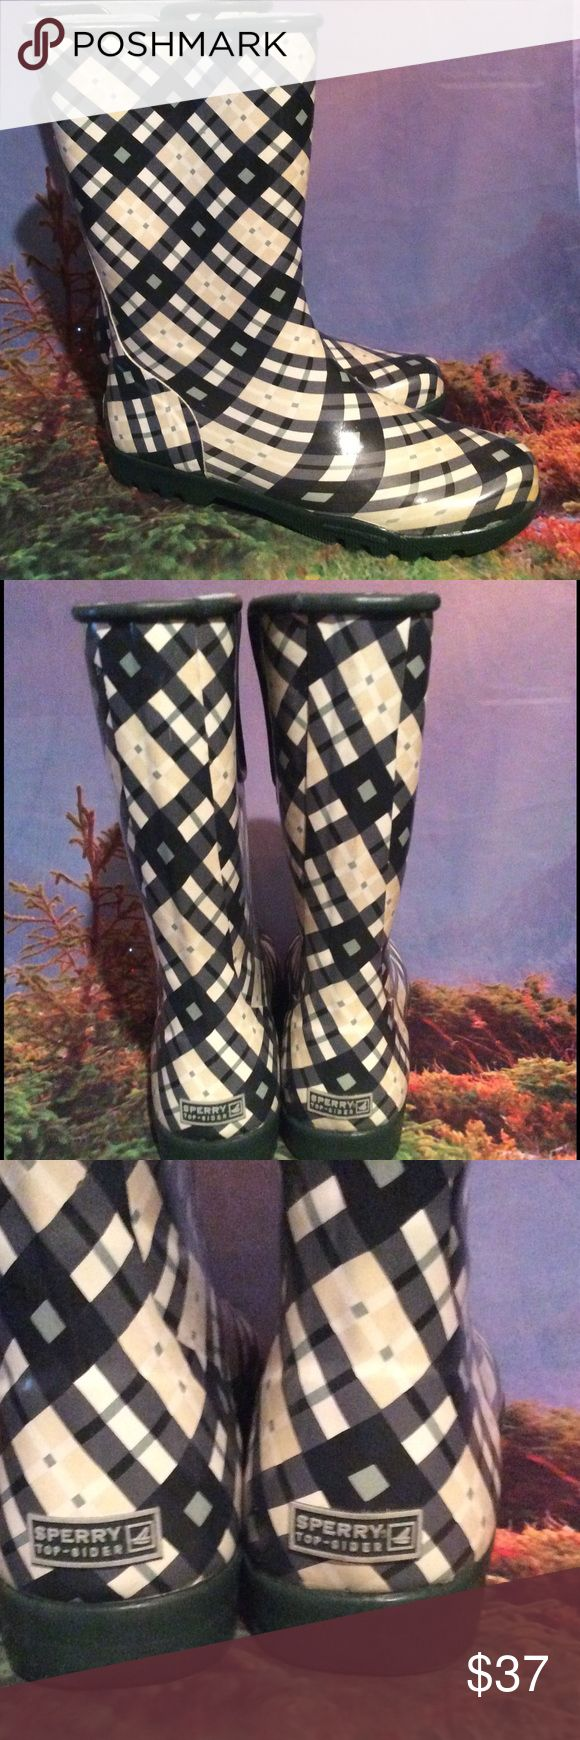 Sperry Topsider rubber rain boots size 9 Great condition Sperry rubber rain boots. Size 9. Great preowned condition super cute and stylish a little bit of elastic for the calf. Great tread. Sperry Top-Sider Shoes Winter & Rain Boots